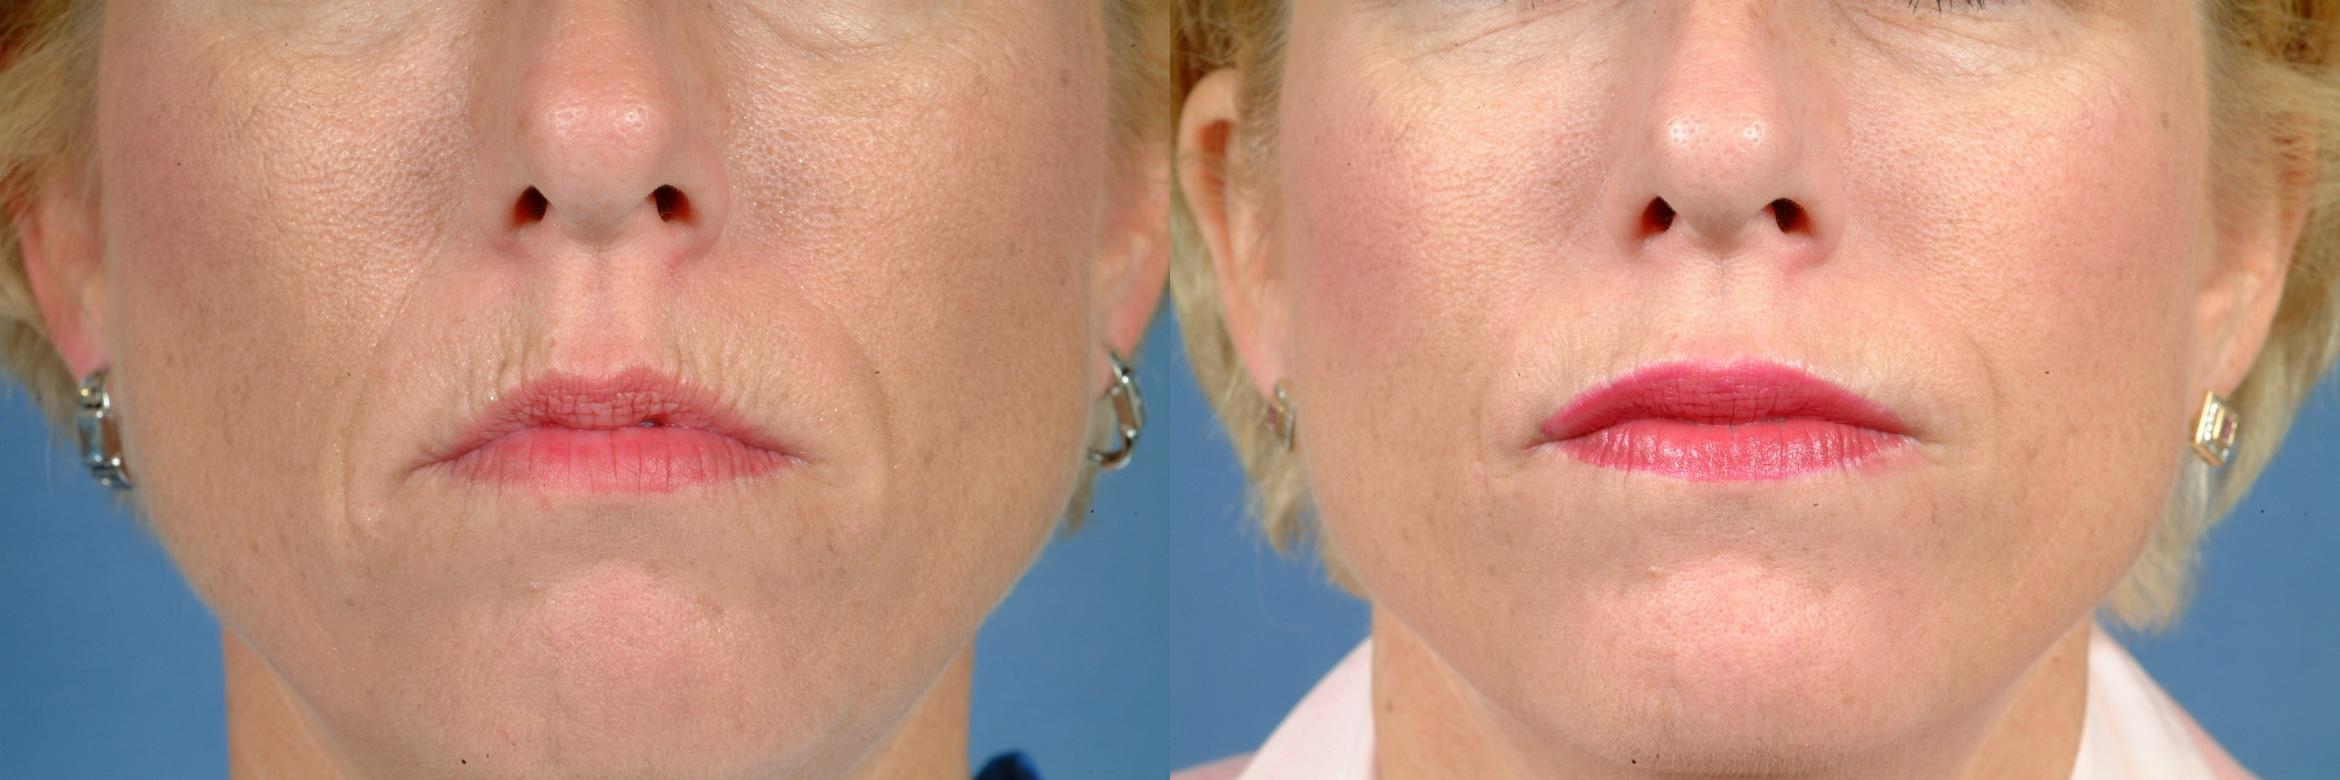 BOTOX® Cosmetic Case 626 Before & After Front | Louisville, KY | CaloAesthetics® Plastic Surgery Center